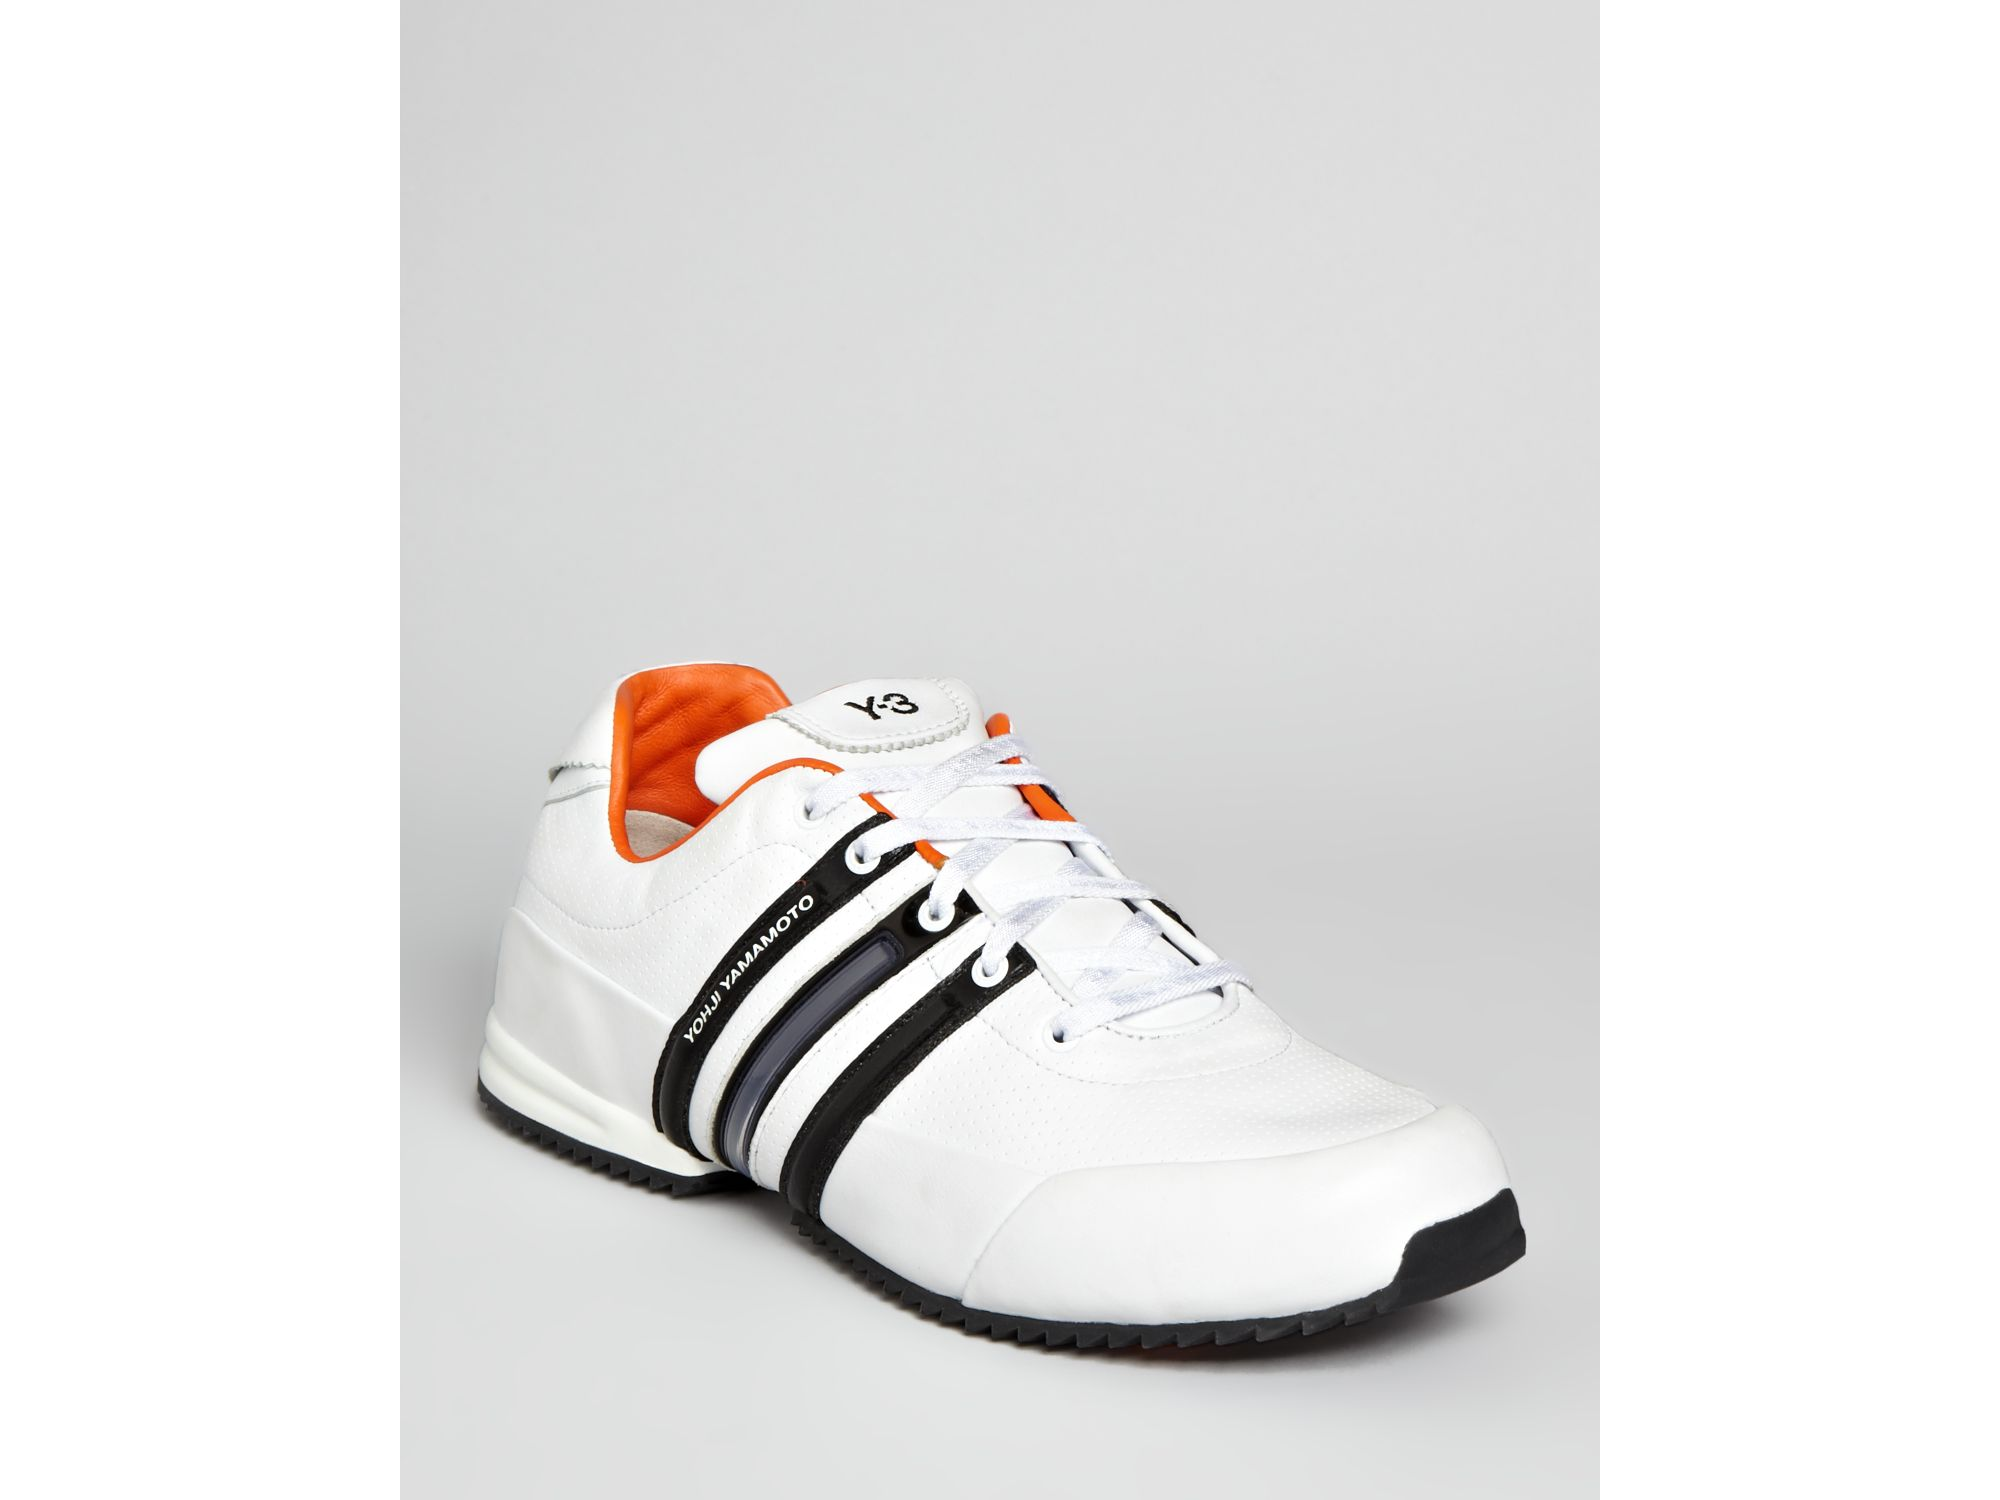 029e46d883bd1b Lyst - Y-3 Sprint Classic Sneakers in White for Men